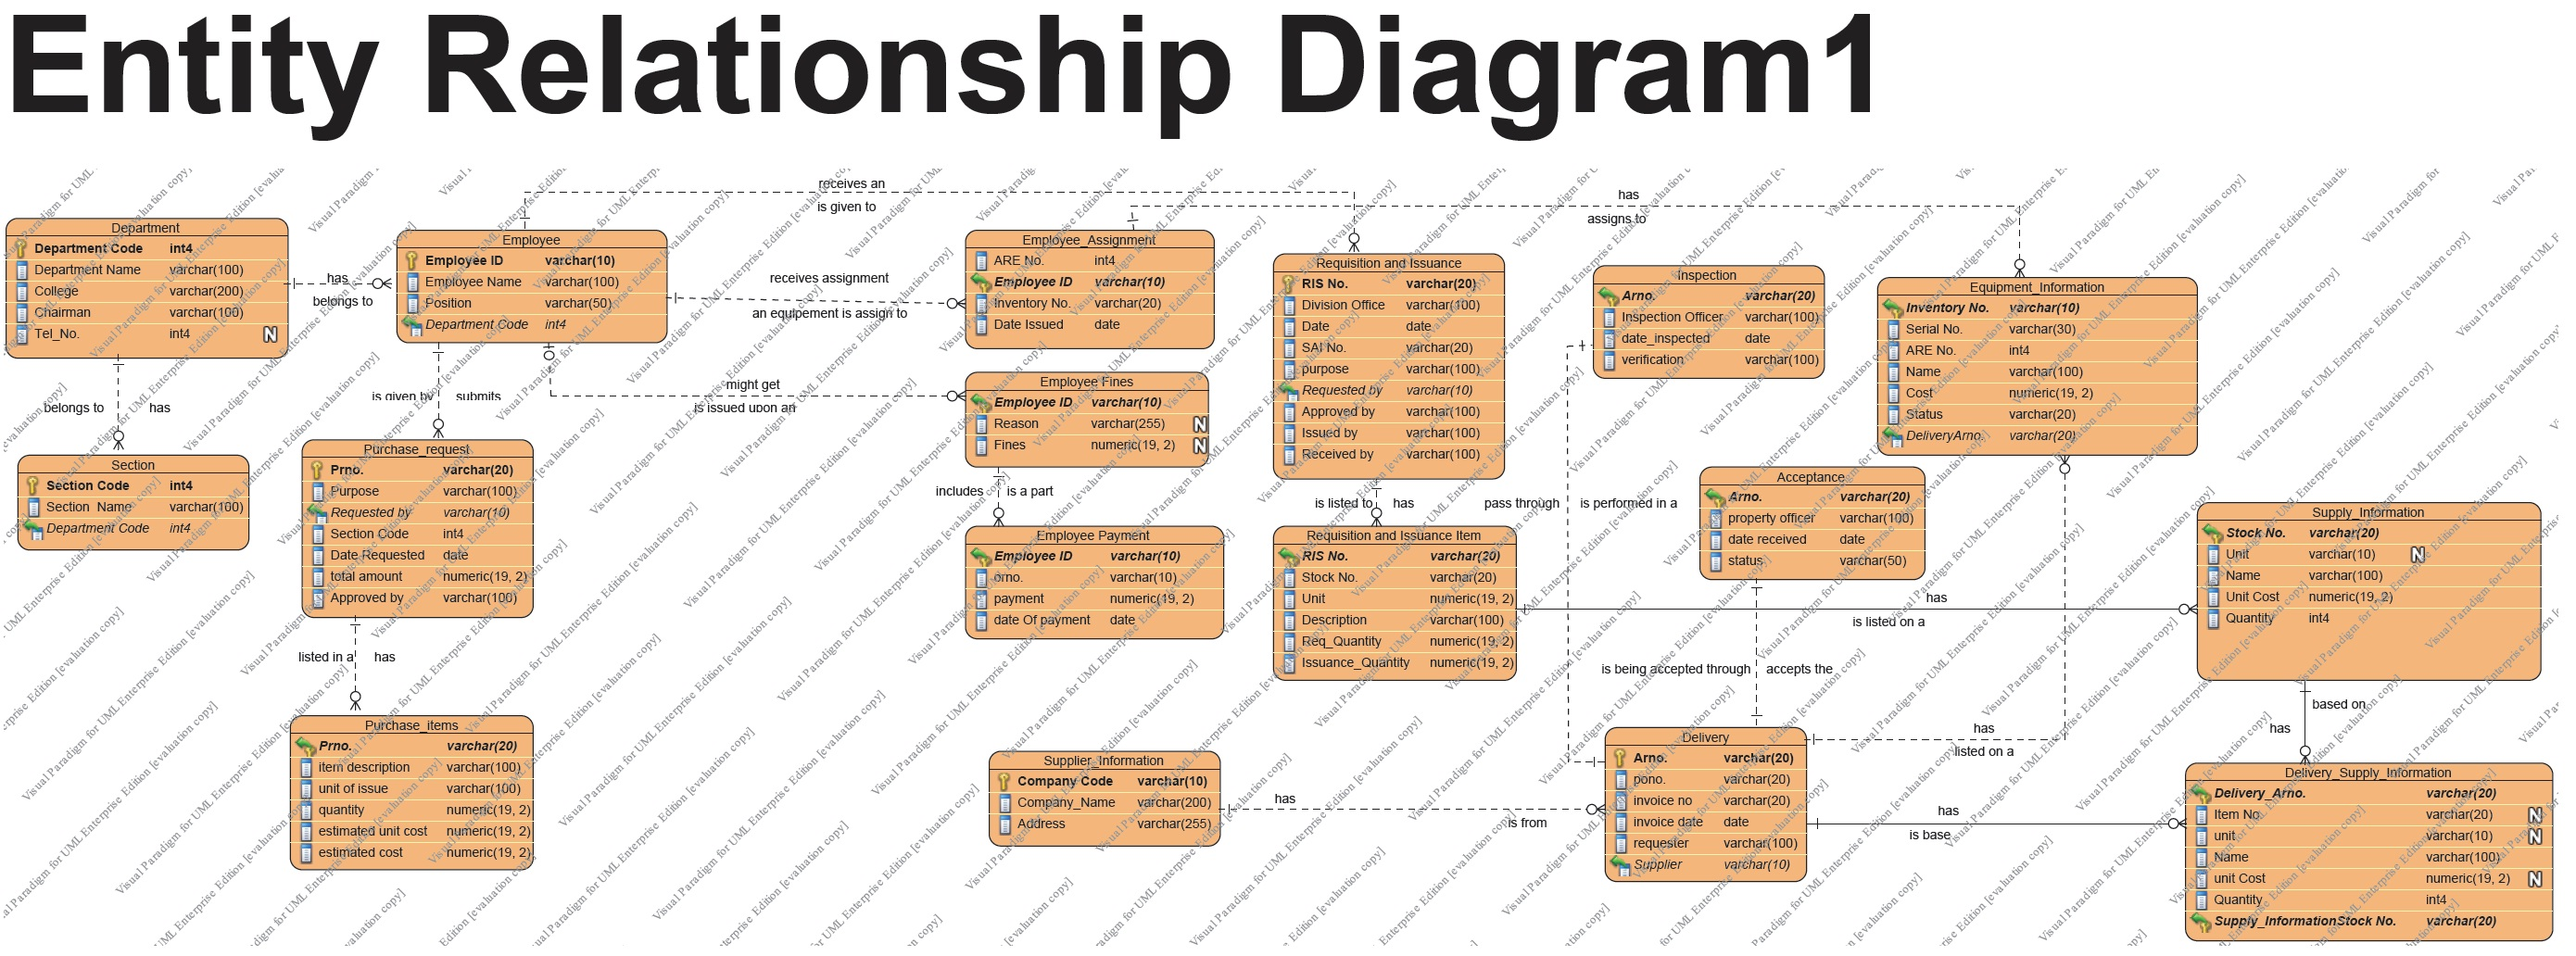 entity relationship diagram inventory 98 f150 alarm wiring dfd 7th version plus use case and updated erd msu supply